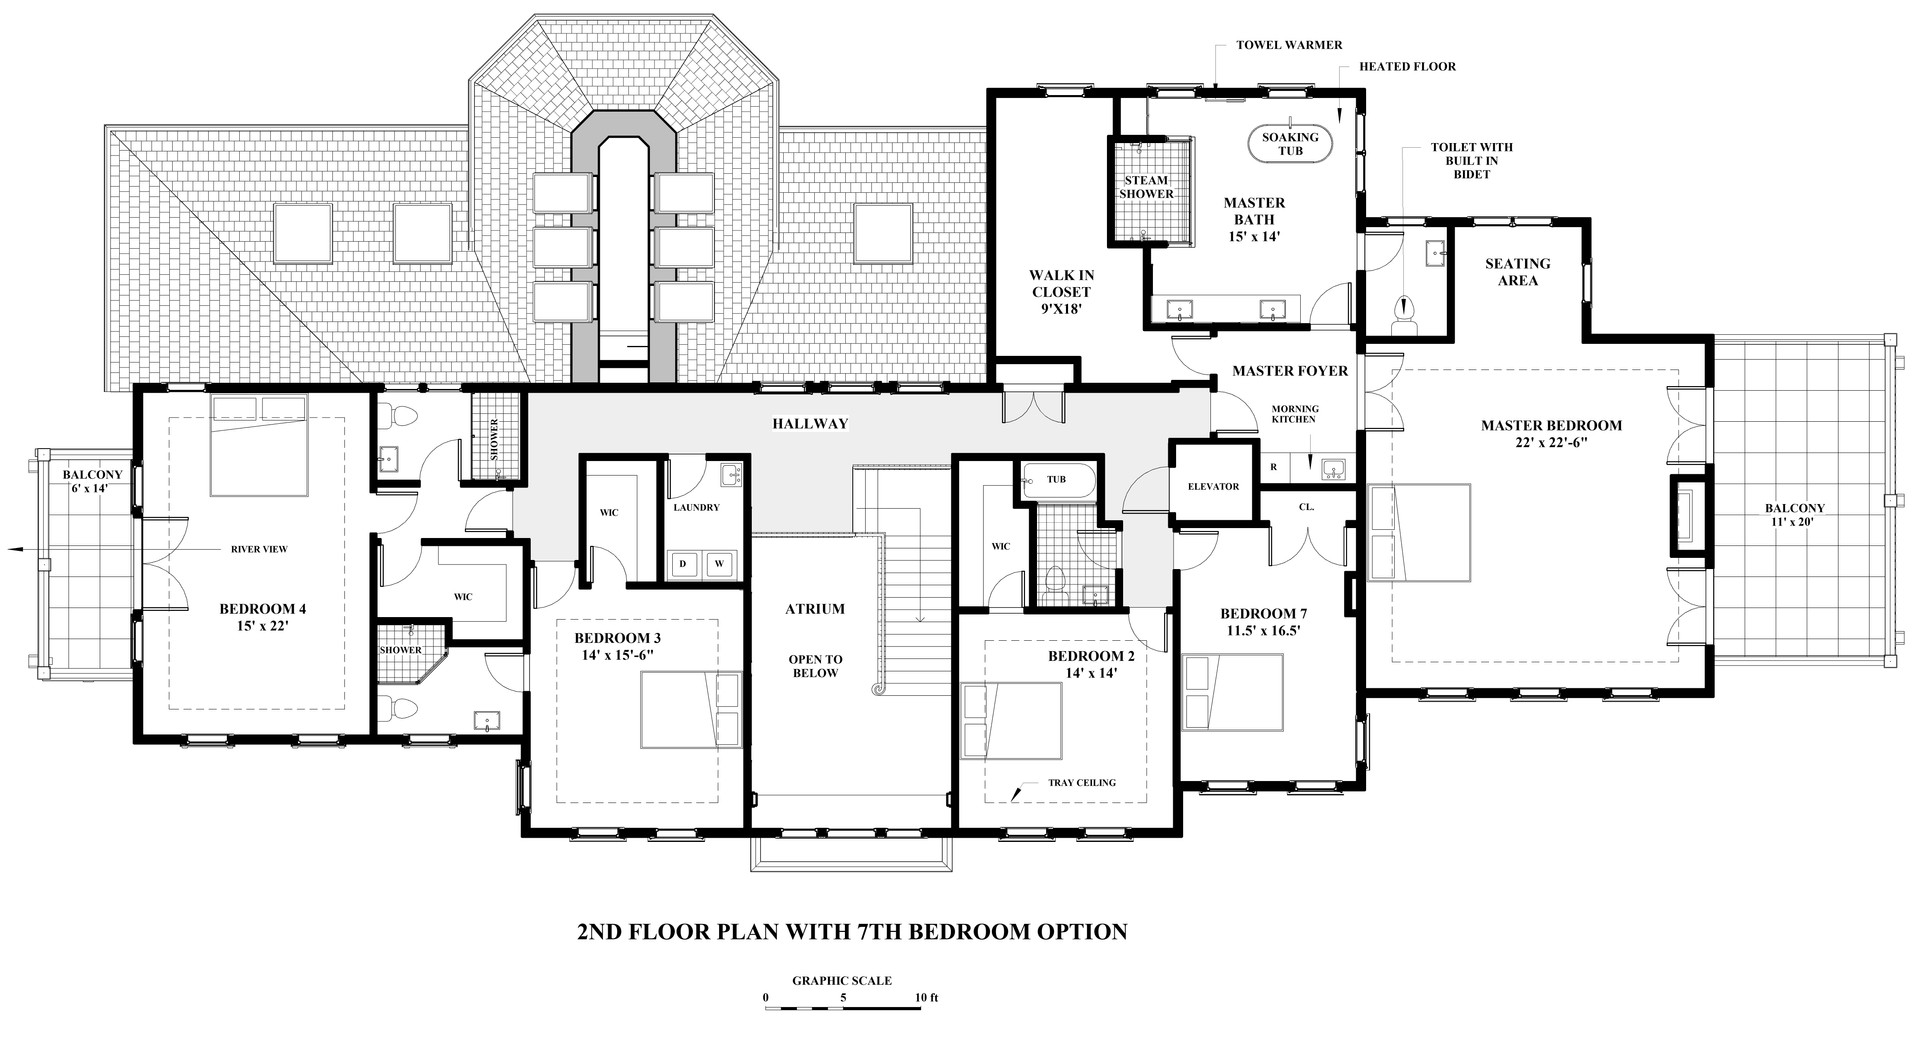 2ND FLOOR PLAN WITH 7TH BEDROOM.jpg